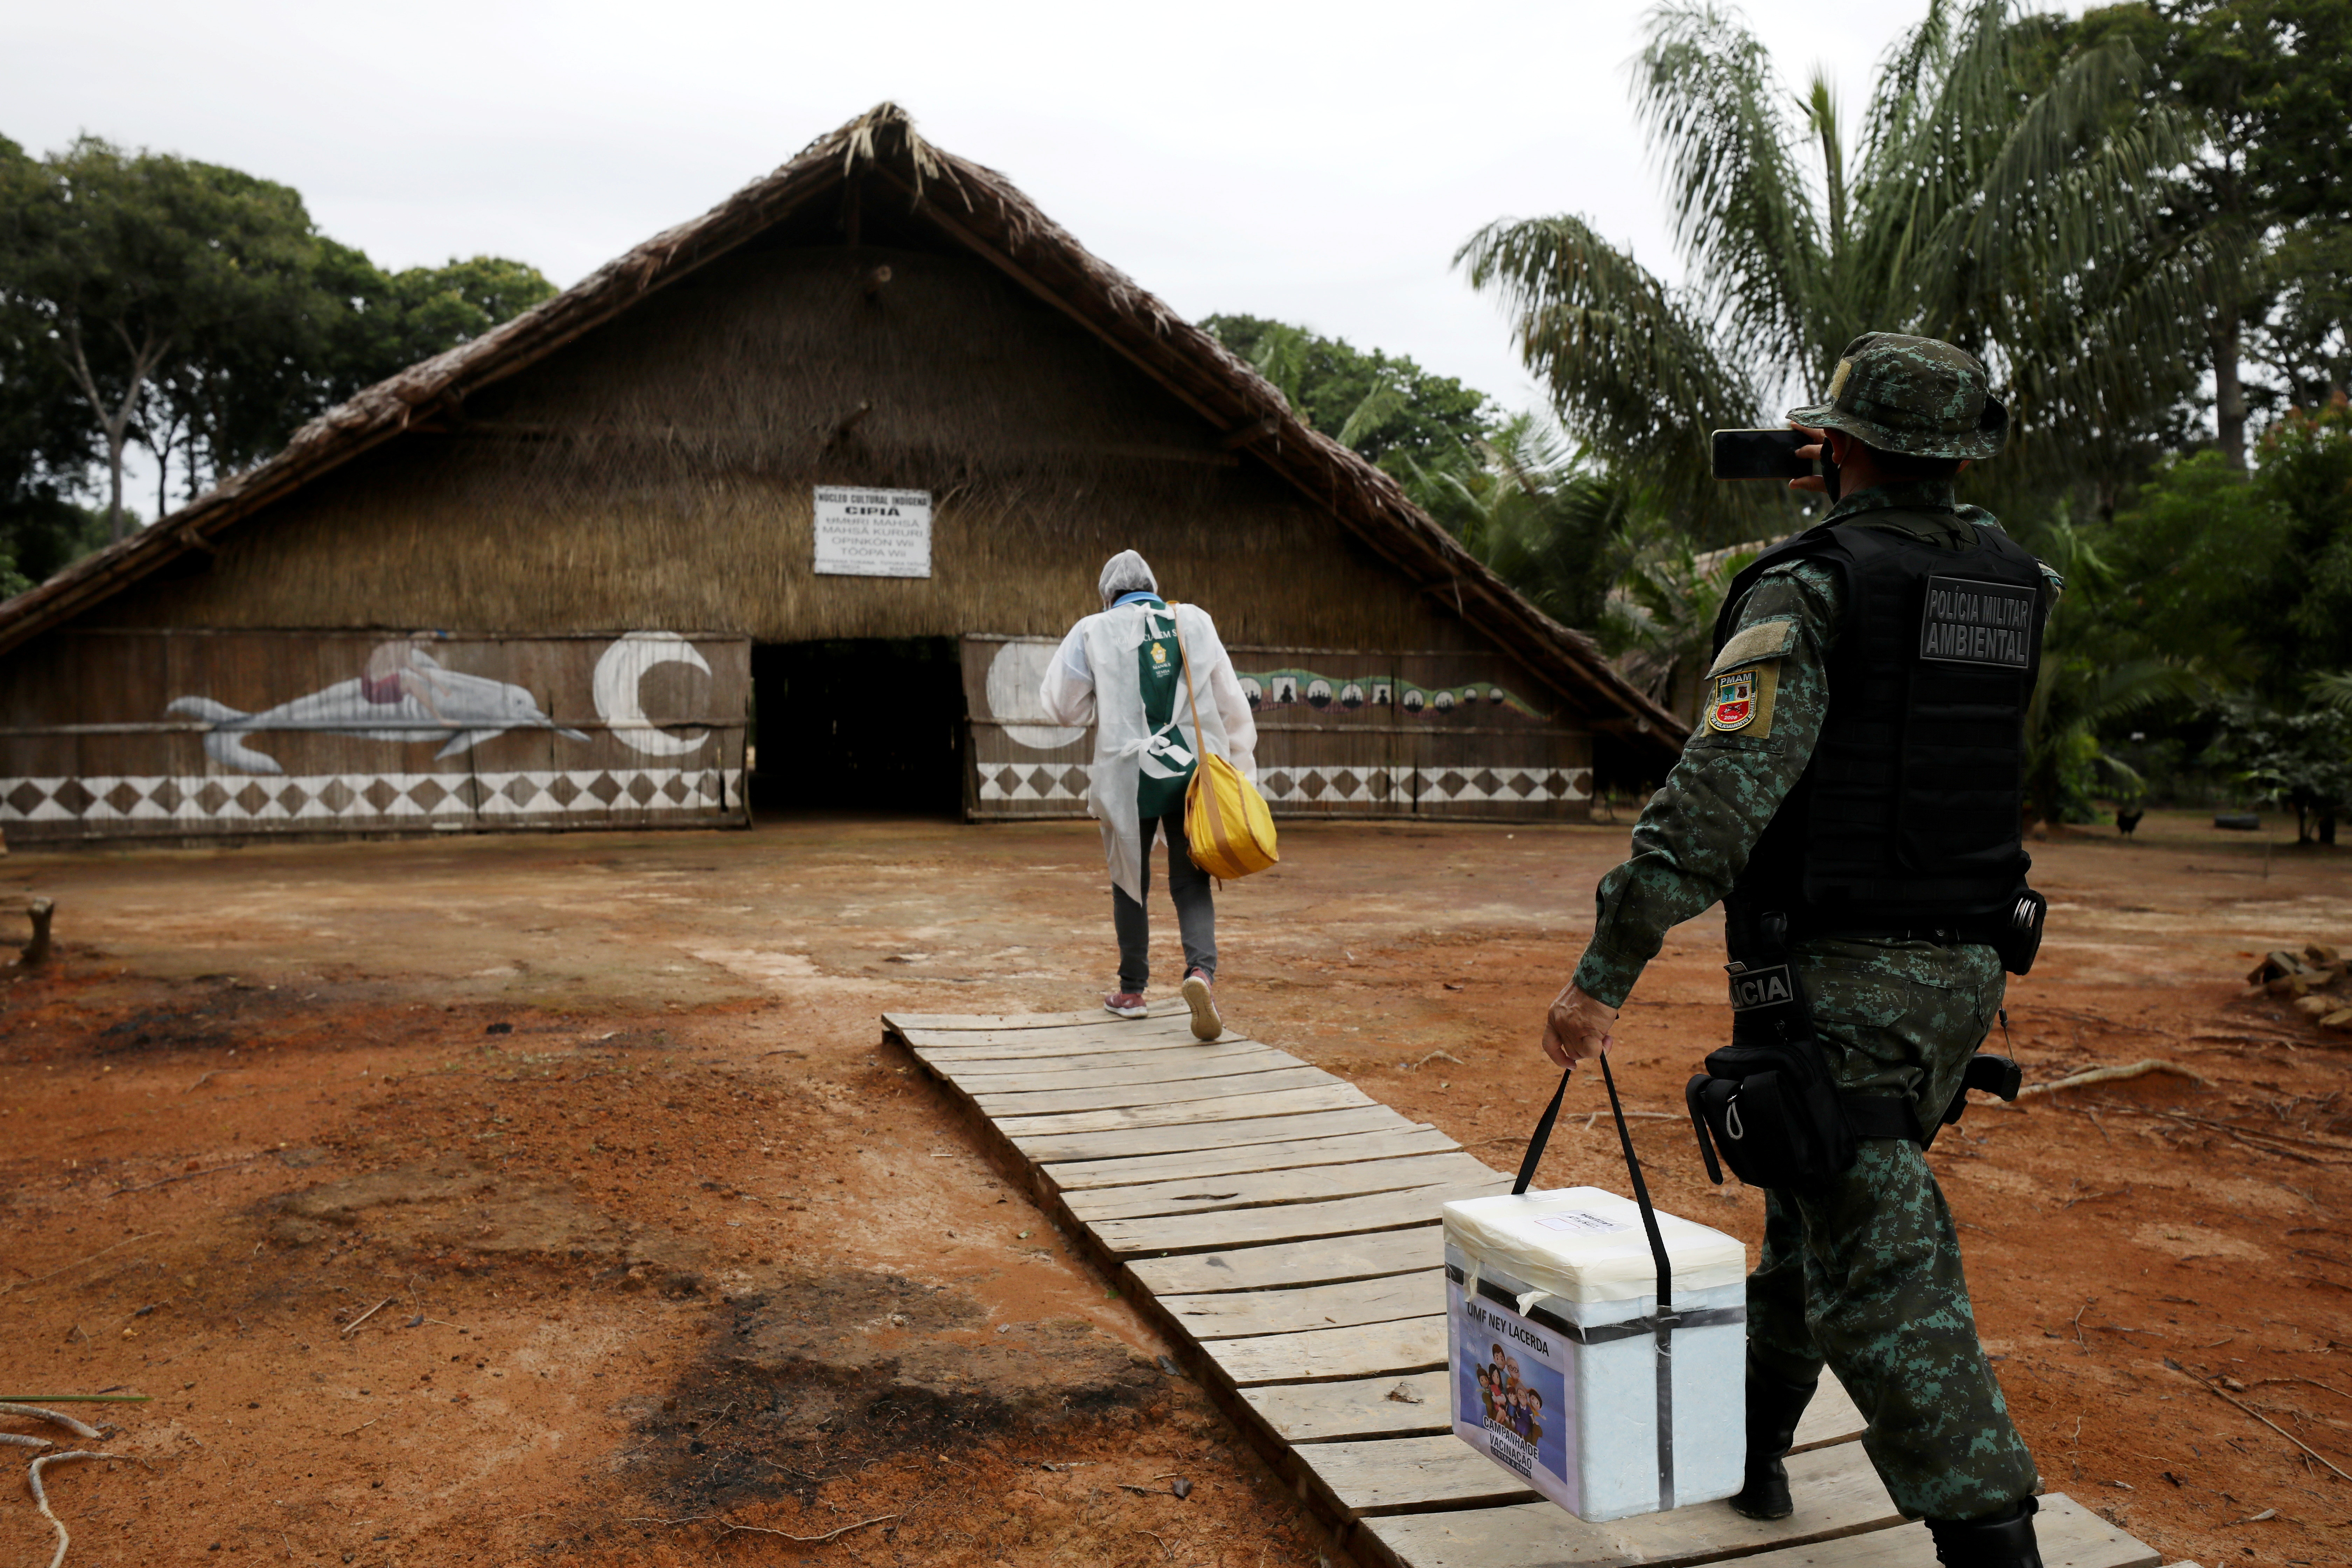 A municipal health worker and an environmental military police officer carry the AstraZeneca/Oxford vaccine as they enter in an Indigenous hut at the the Sustainable Development Reserve of Tupe in the Negro river banks in Manaus, Brazil, February 9, 2021. Picture taken February 9, 2021. REUTERS/Bruno Kelly - RC2PPL92XUT5